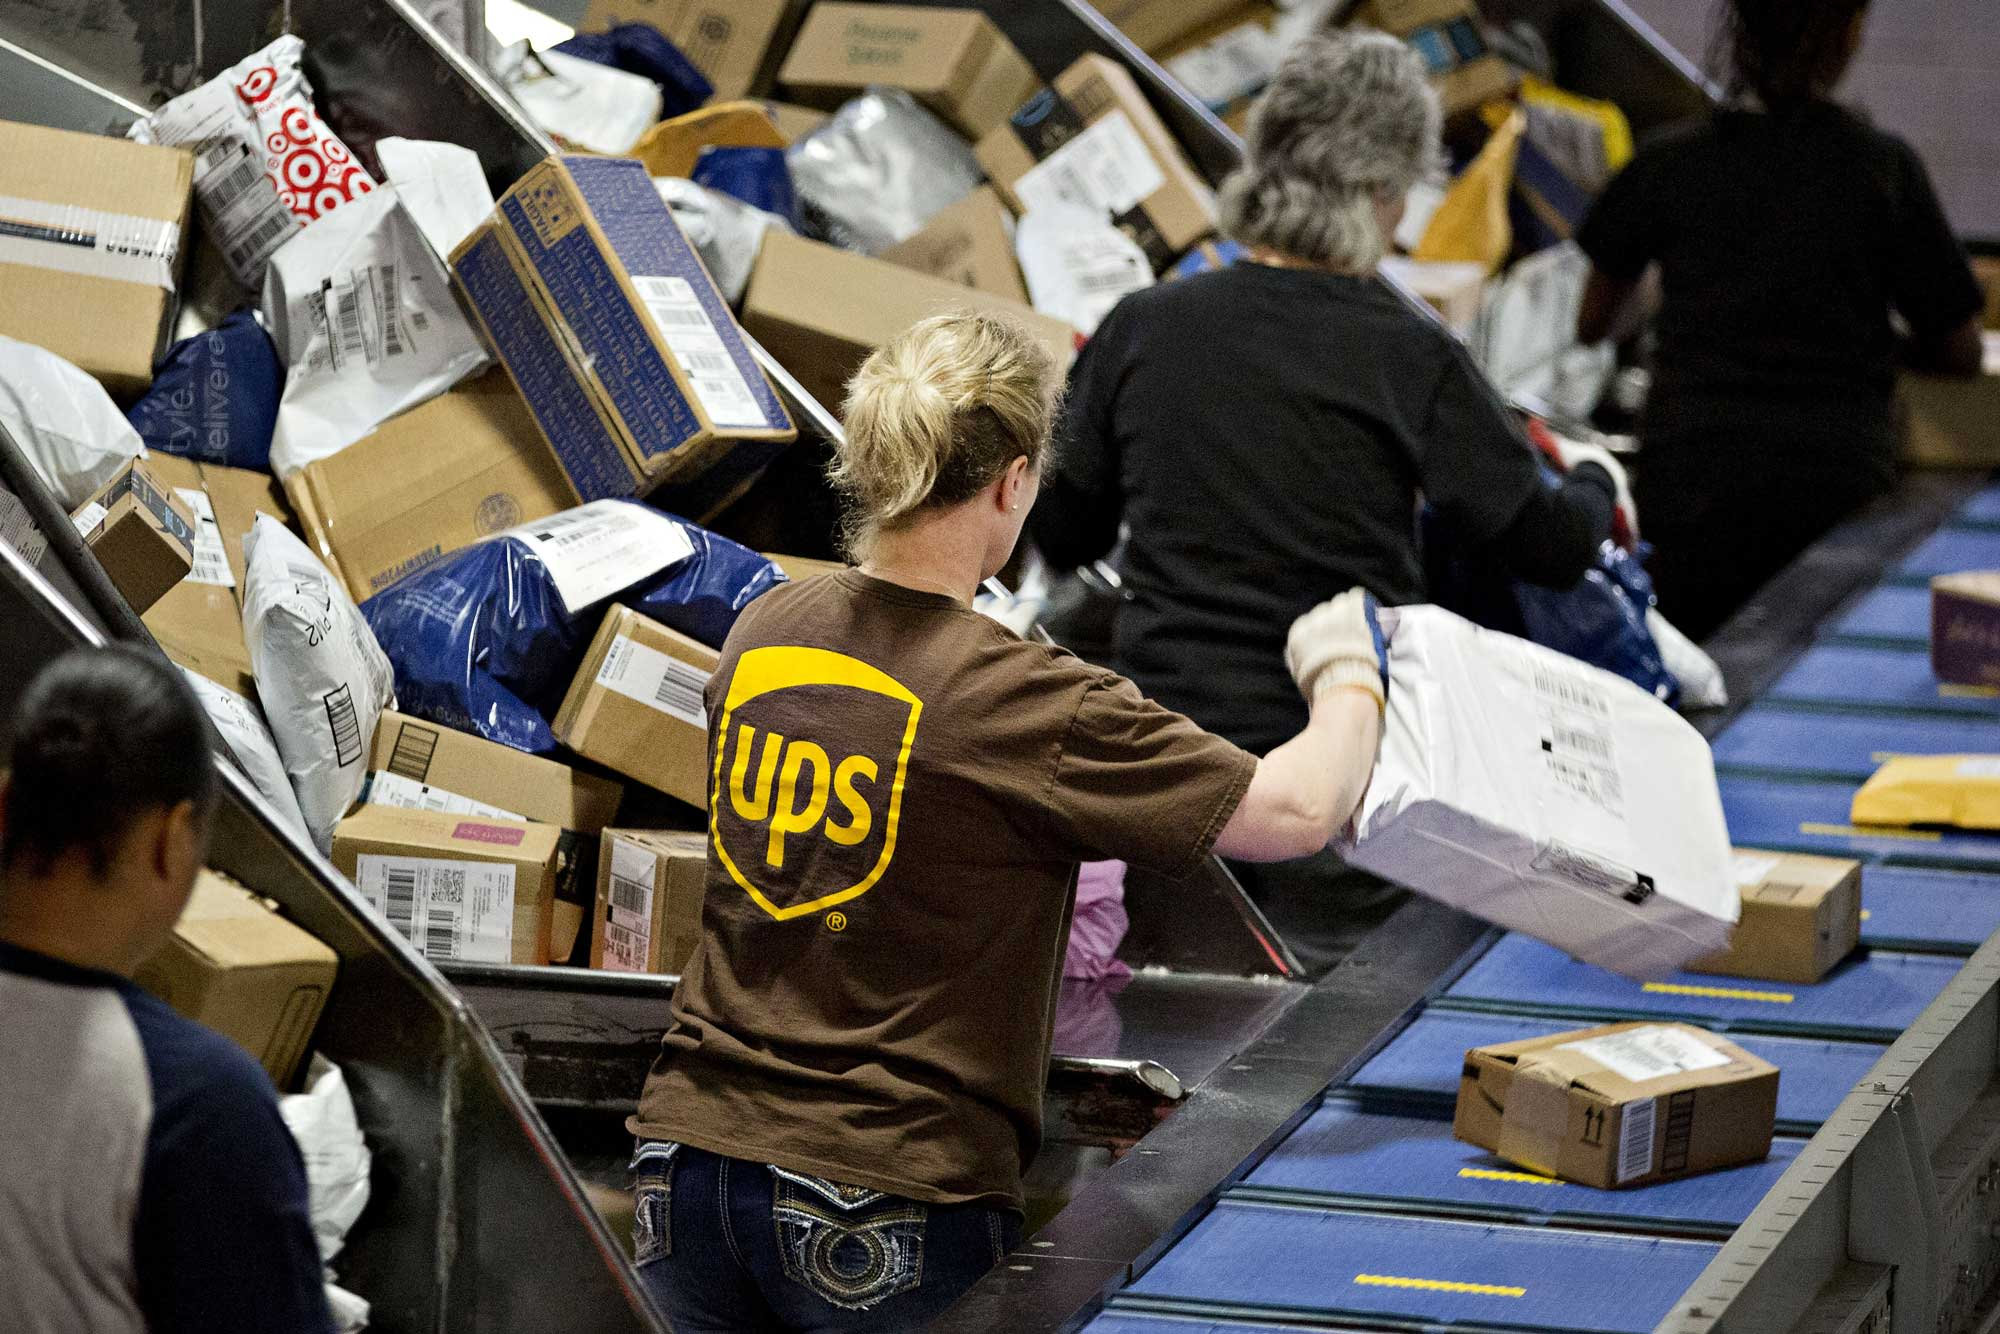 UPS shares fall, despite earnings beat, as COO retirement throws wrench in succession plans